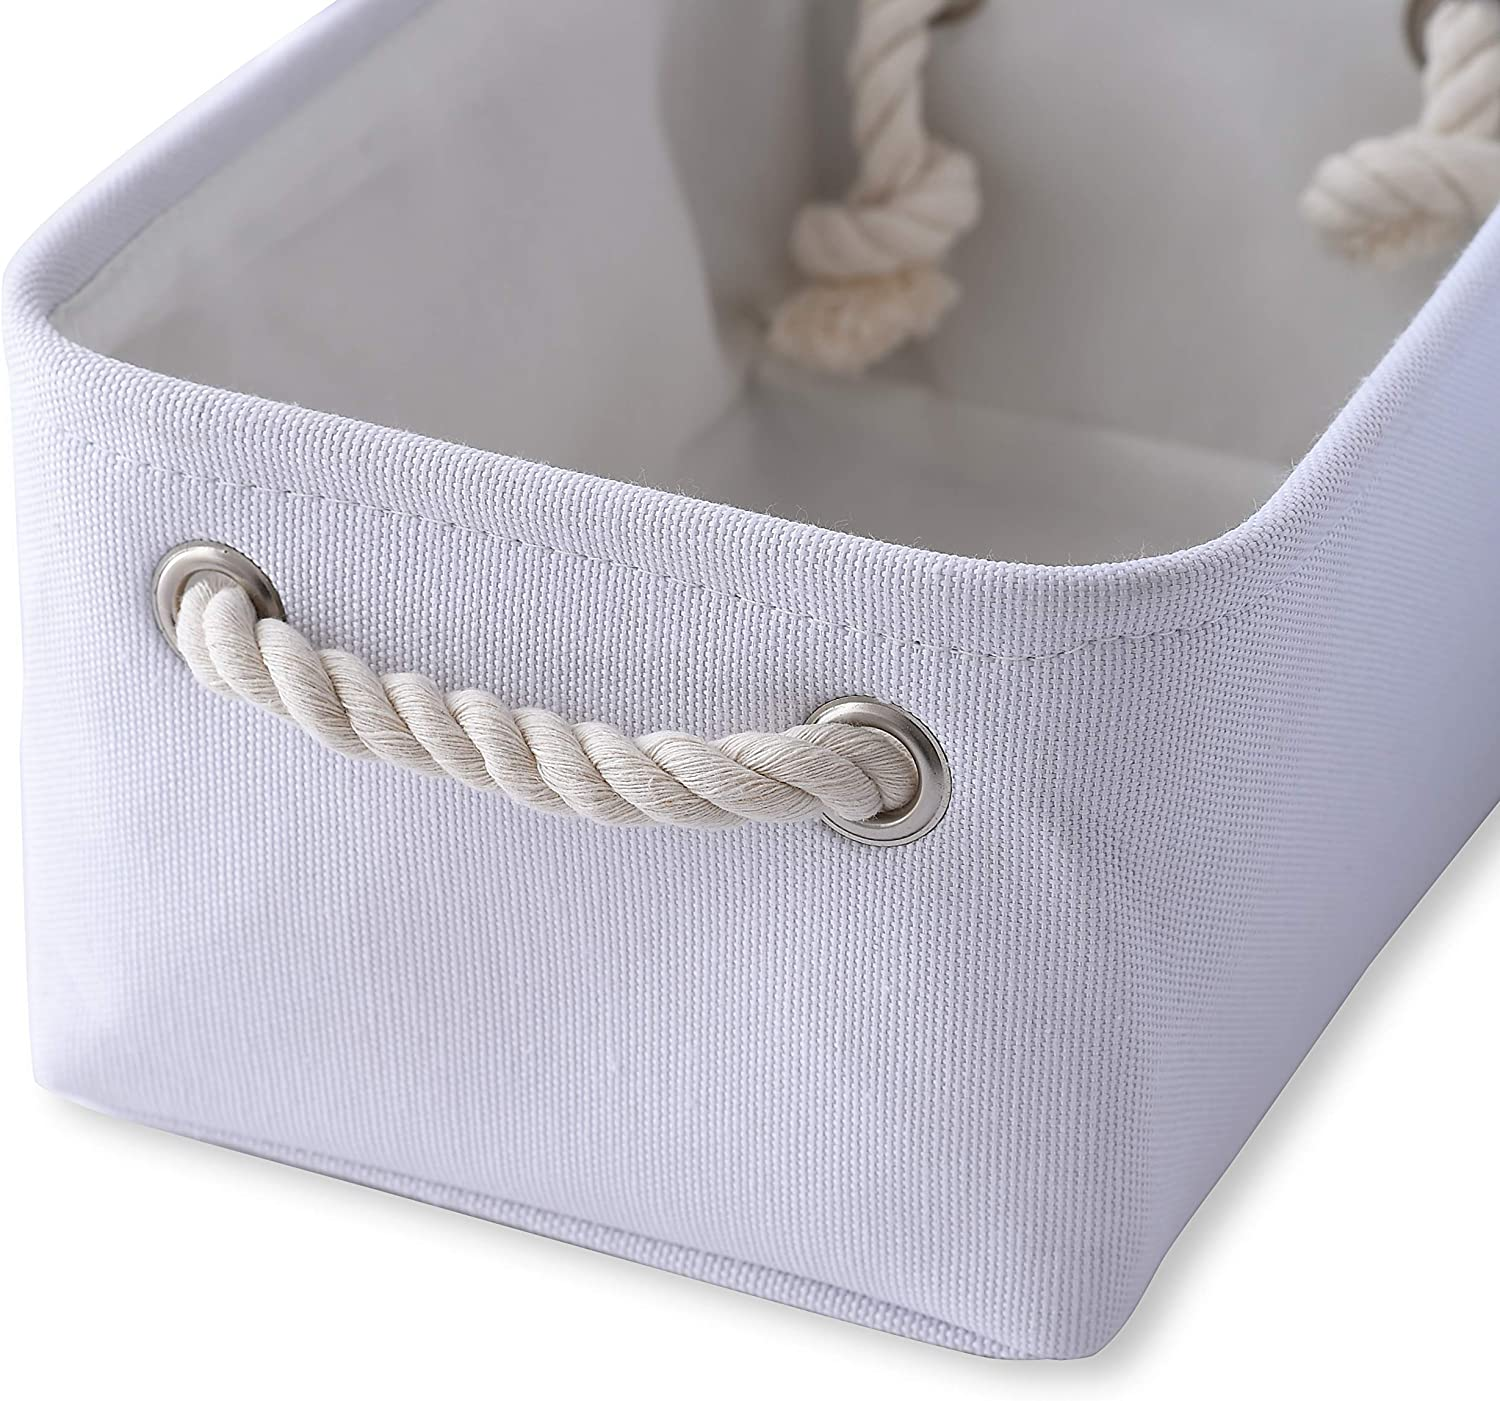 Towels 6 Pack 11.8L/×7.9W/×5.2H inch Dog Toy Storage Baskets for Organizing Toys Storage Basket Storage Bins Fabric Basket Small Basket Storage Organizer with Handles for Home